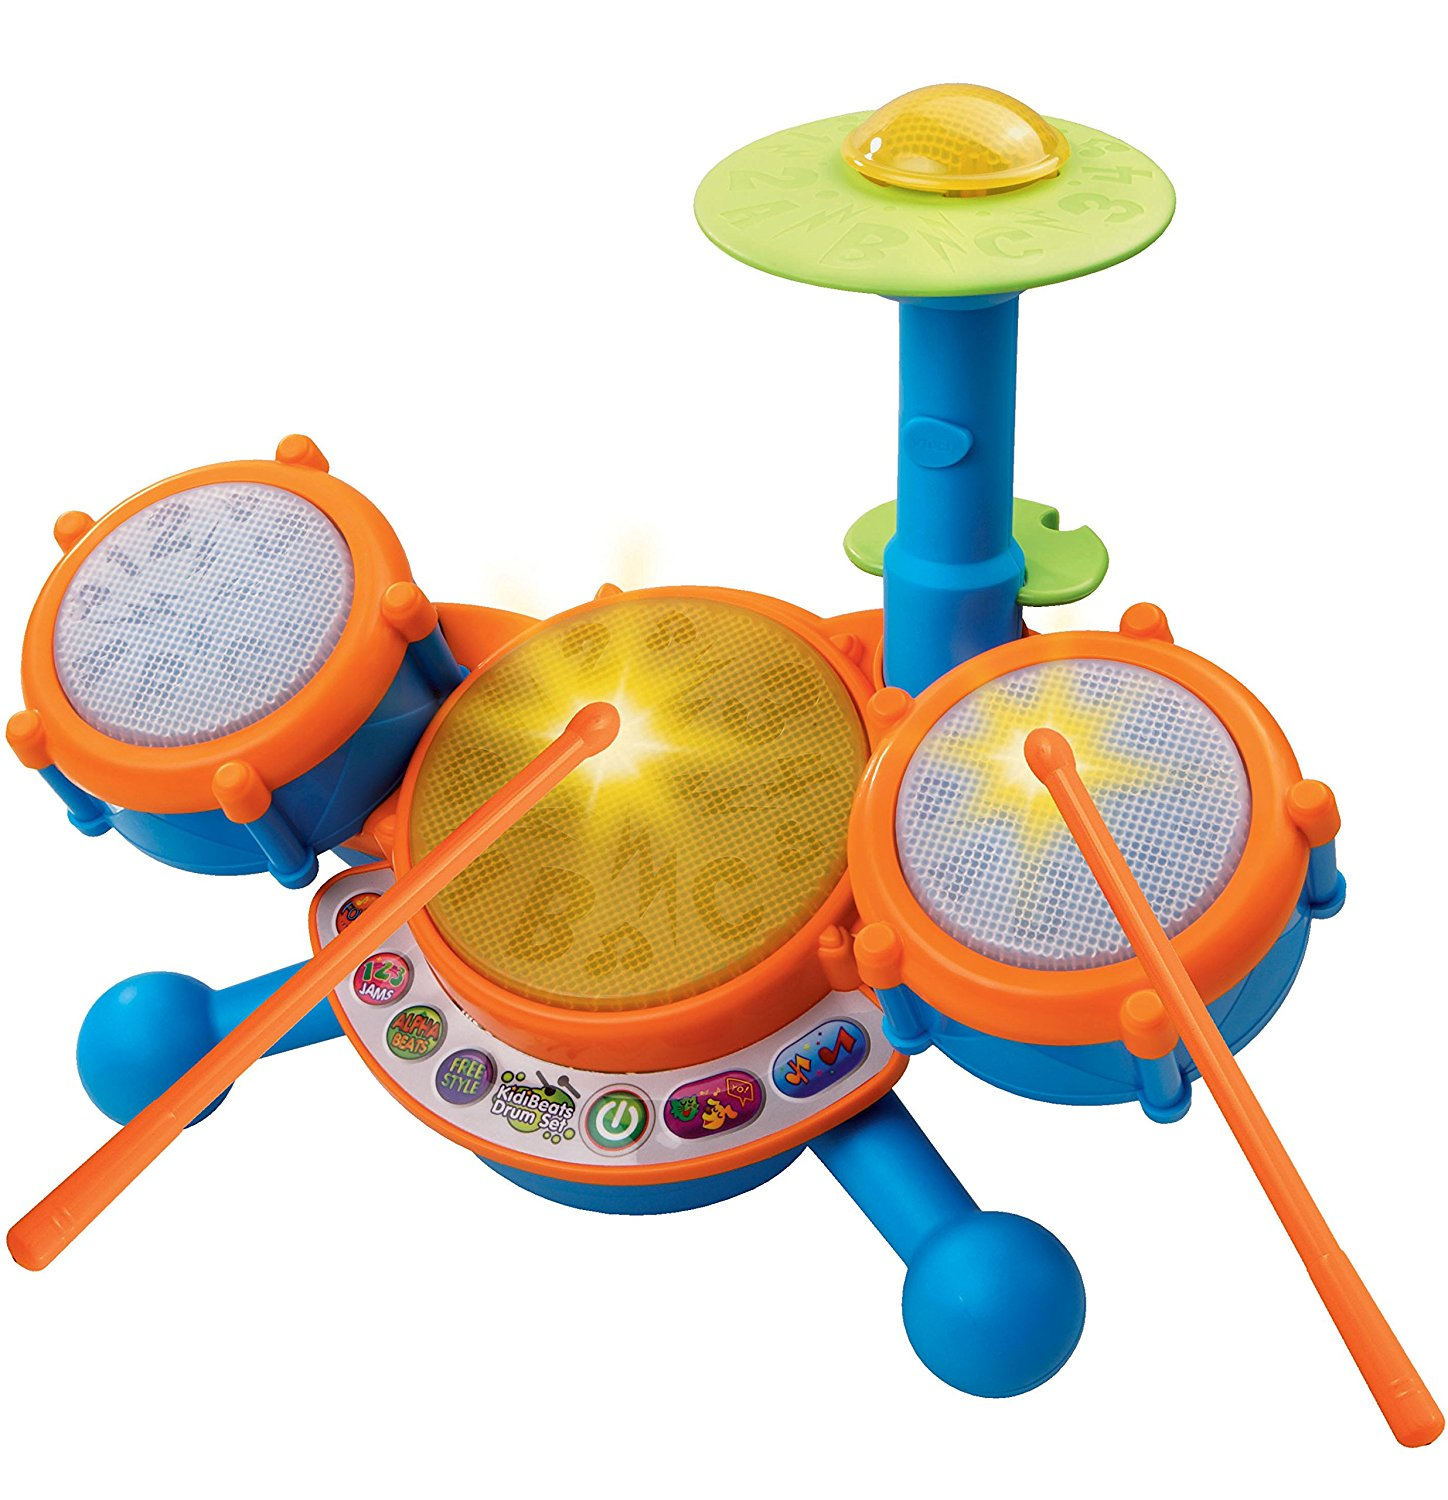 KidiBeats Kids Drum Set By VTech Ship from US by